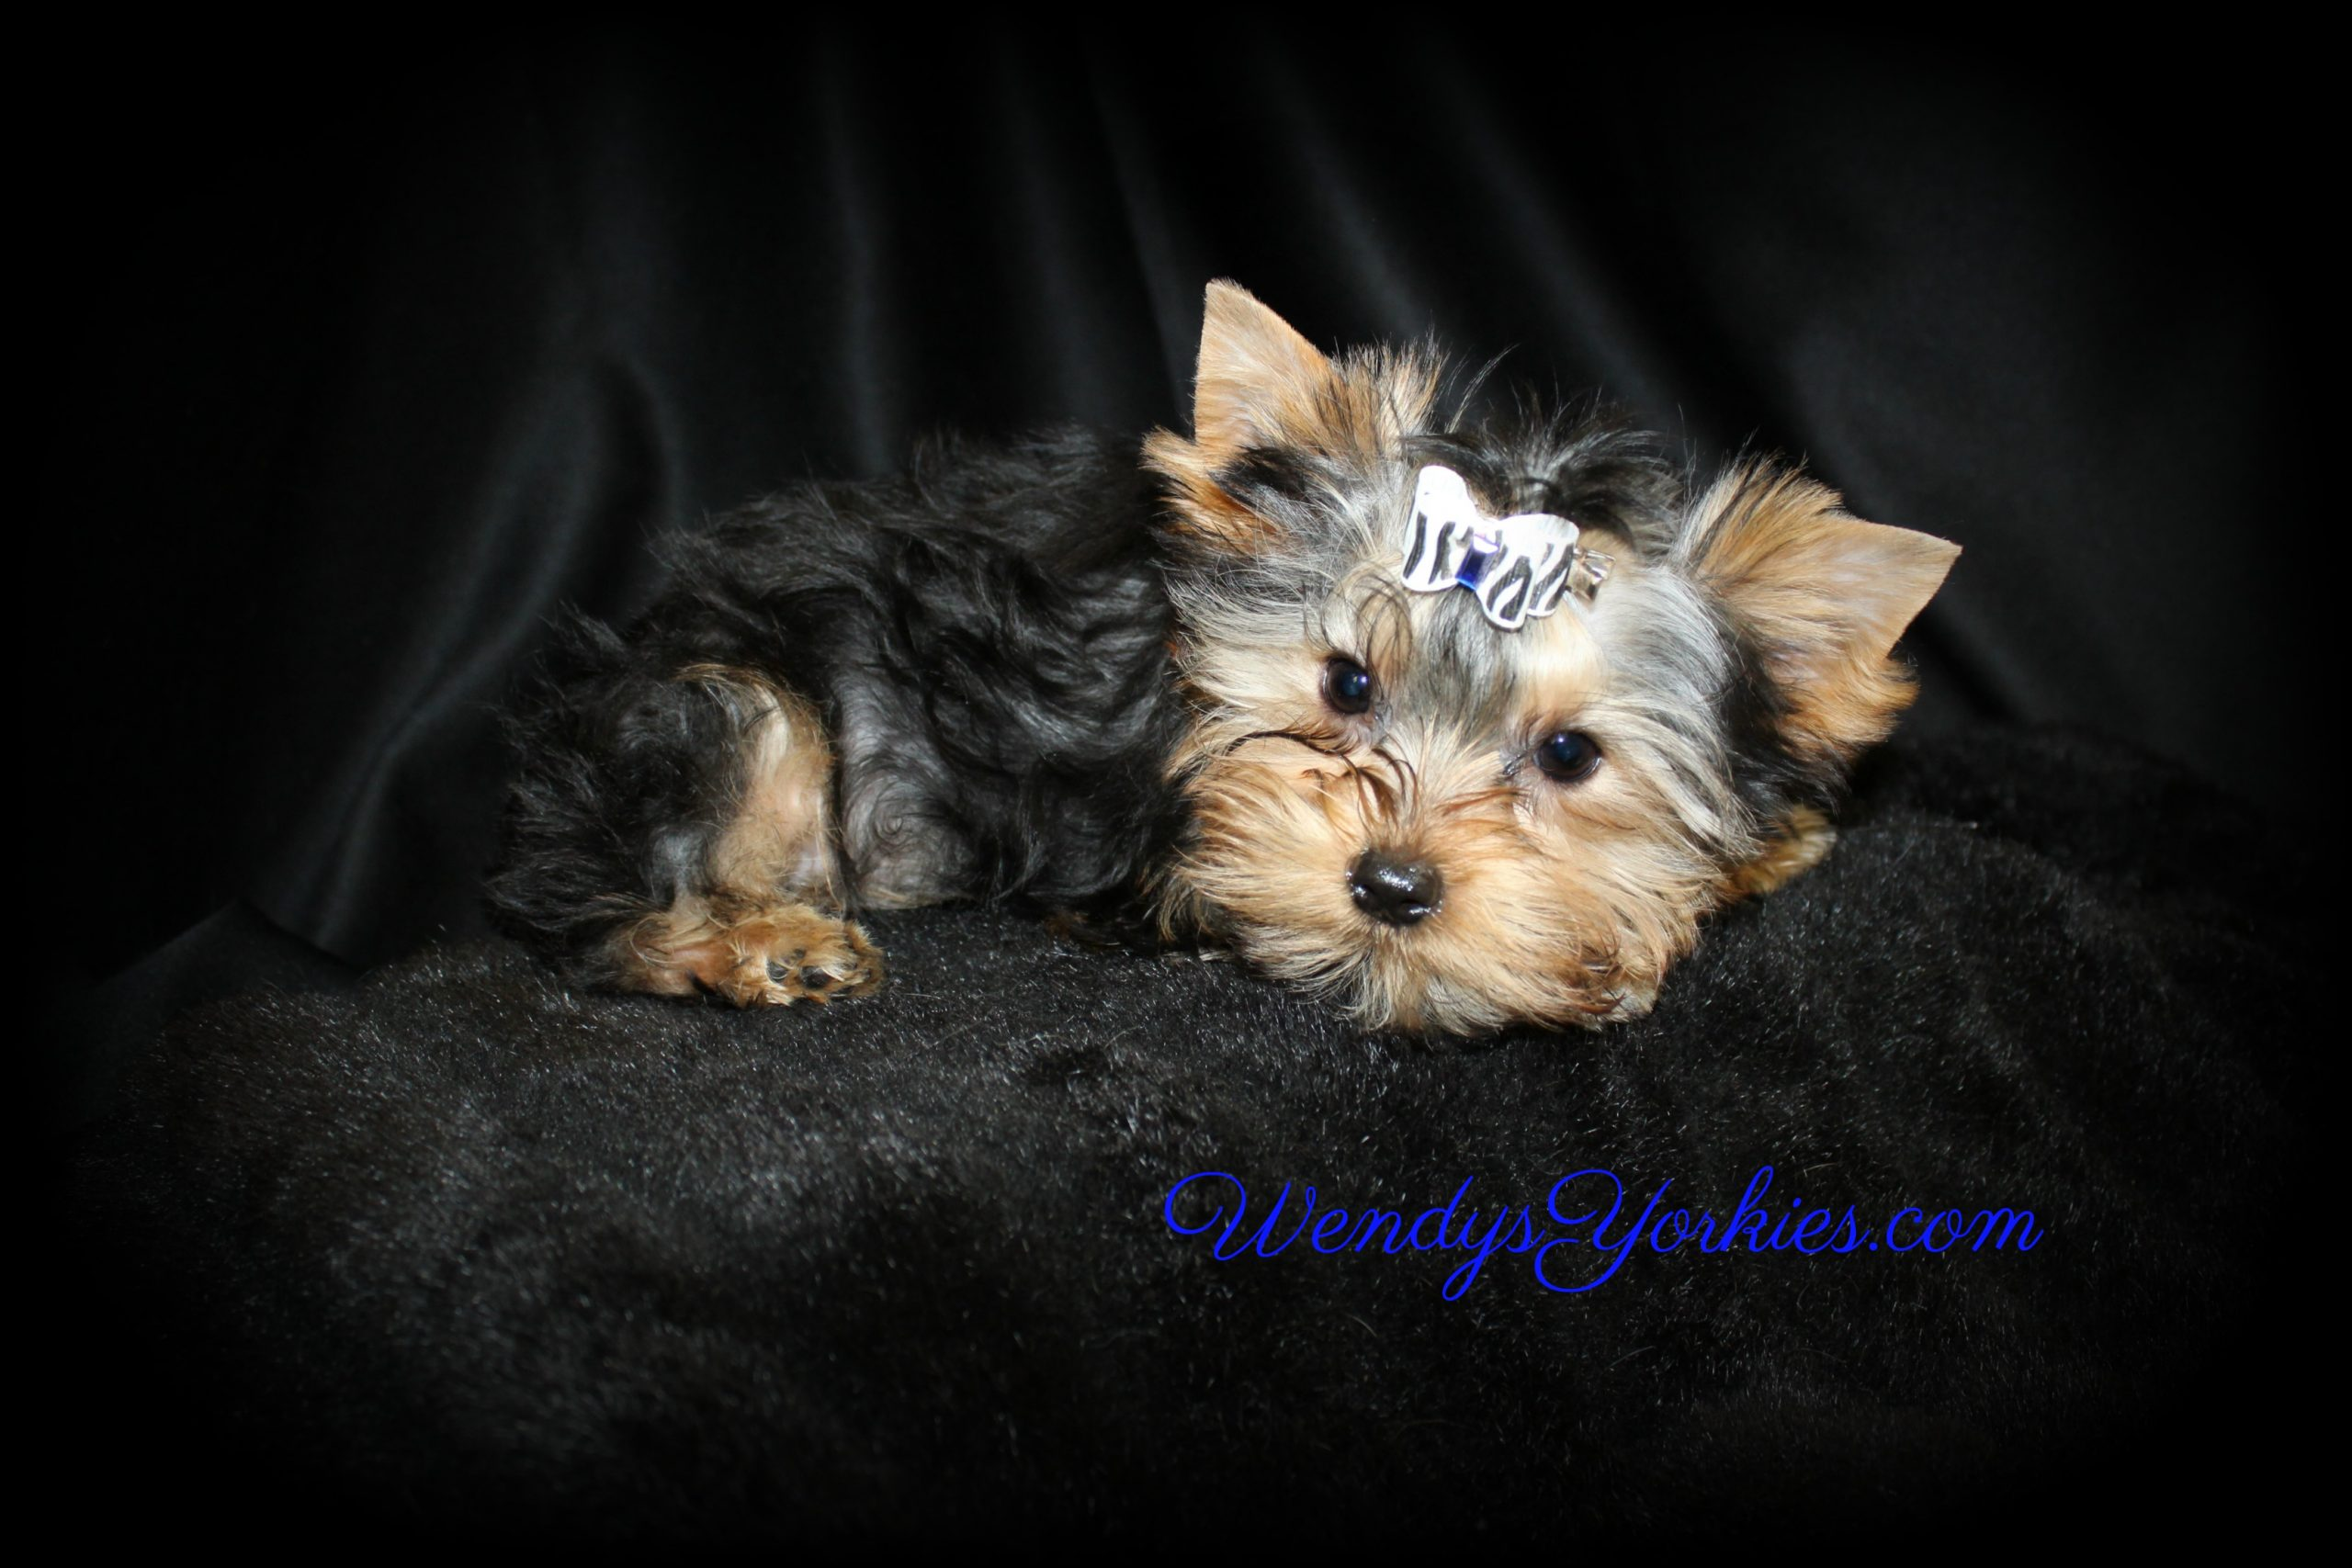 Male YOrkie puppy for sale Ritz, WendysYorkies.com